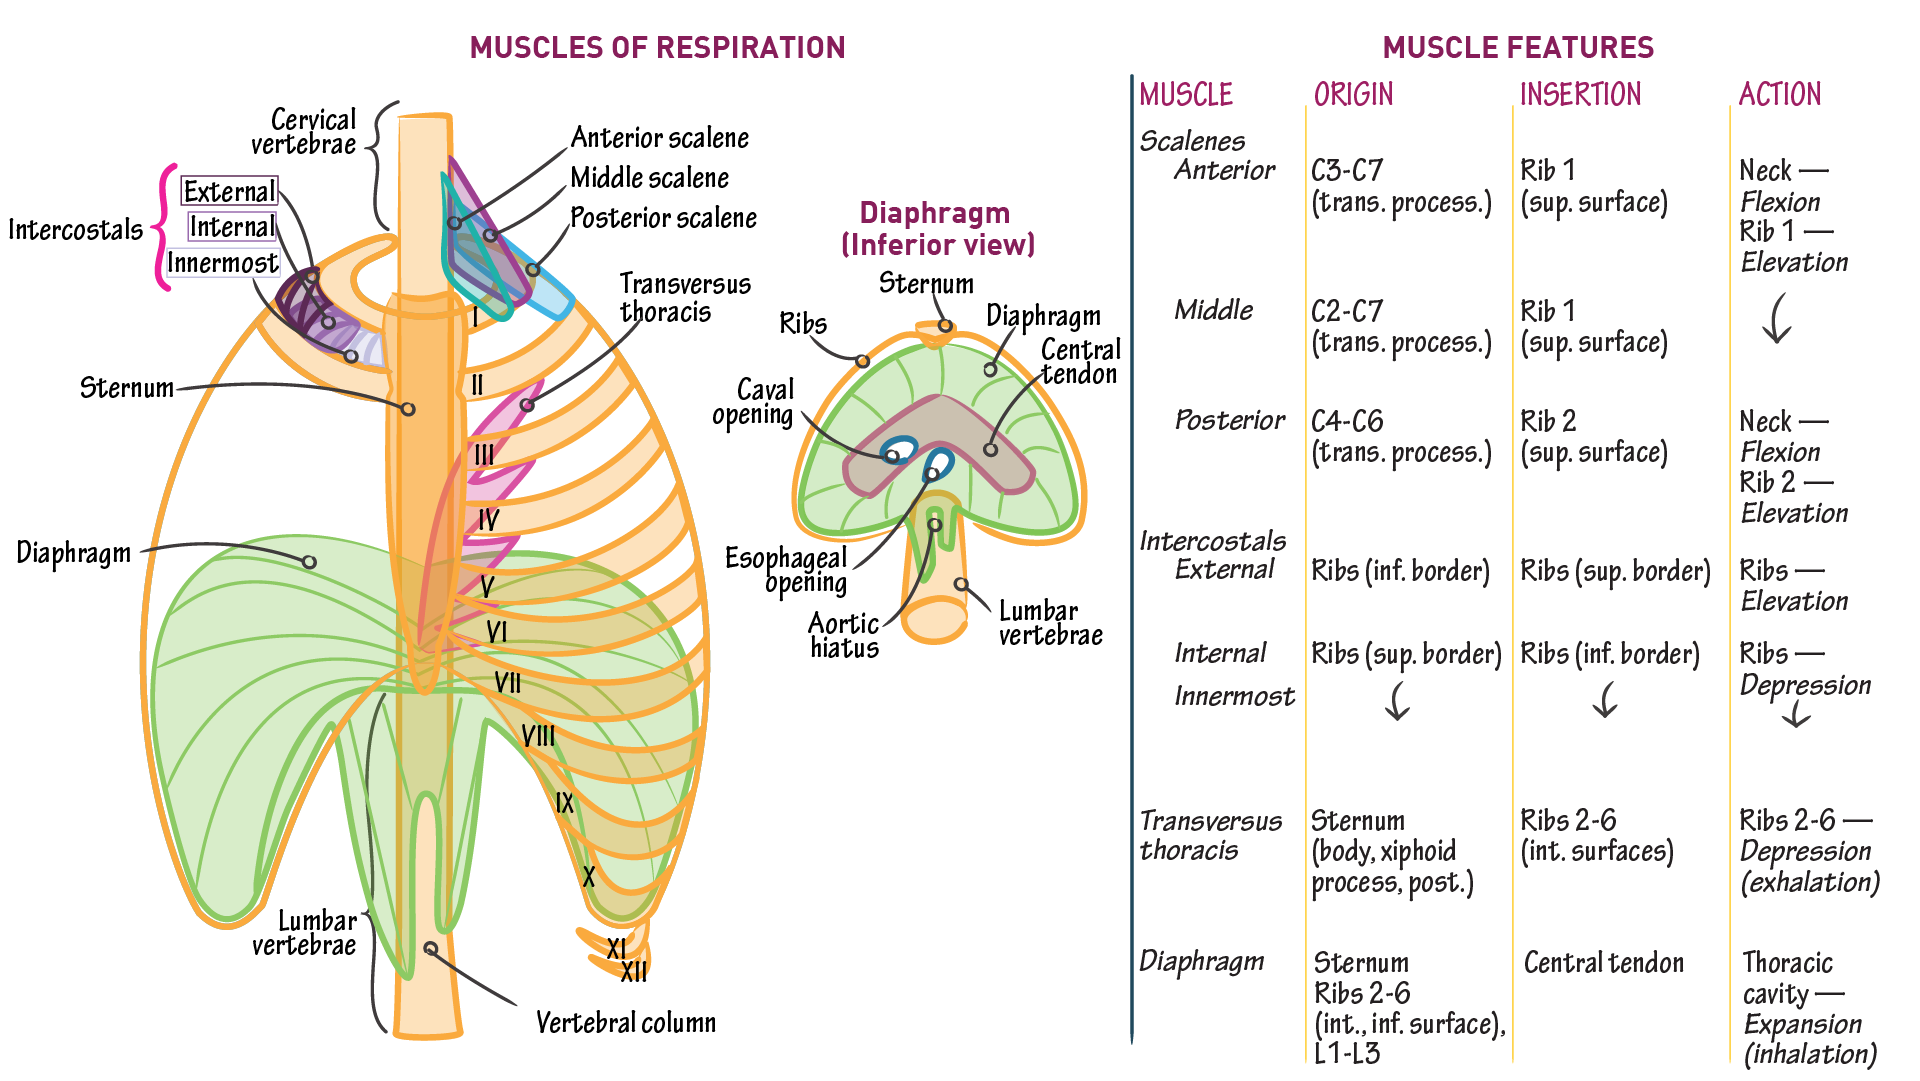 Gross Anatomy: Muscles of Respiration | Draw It to Know It